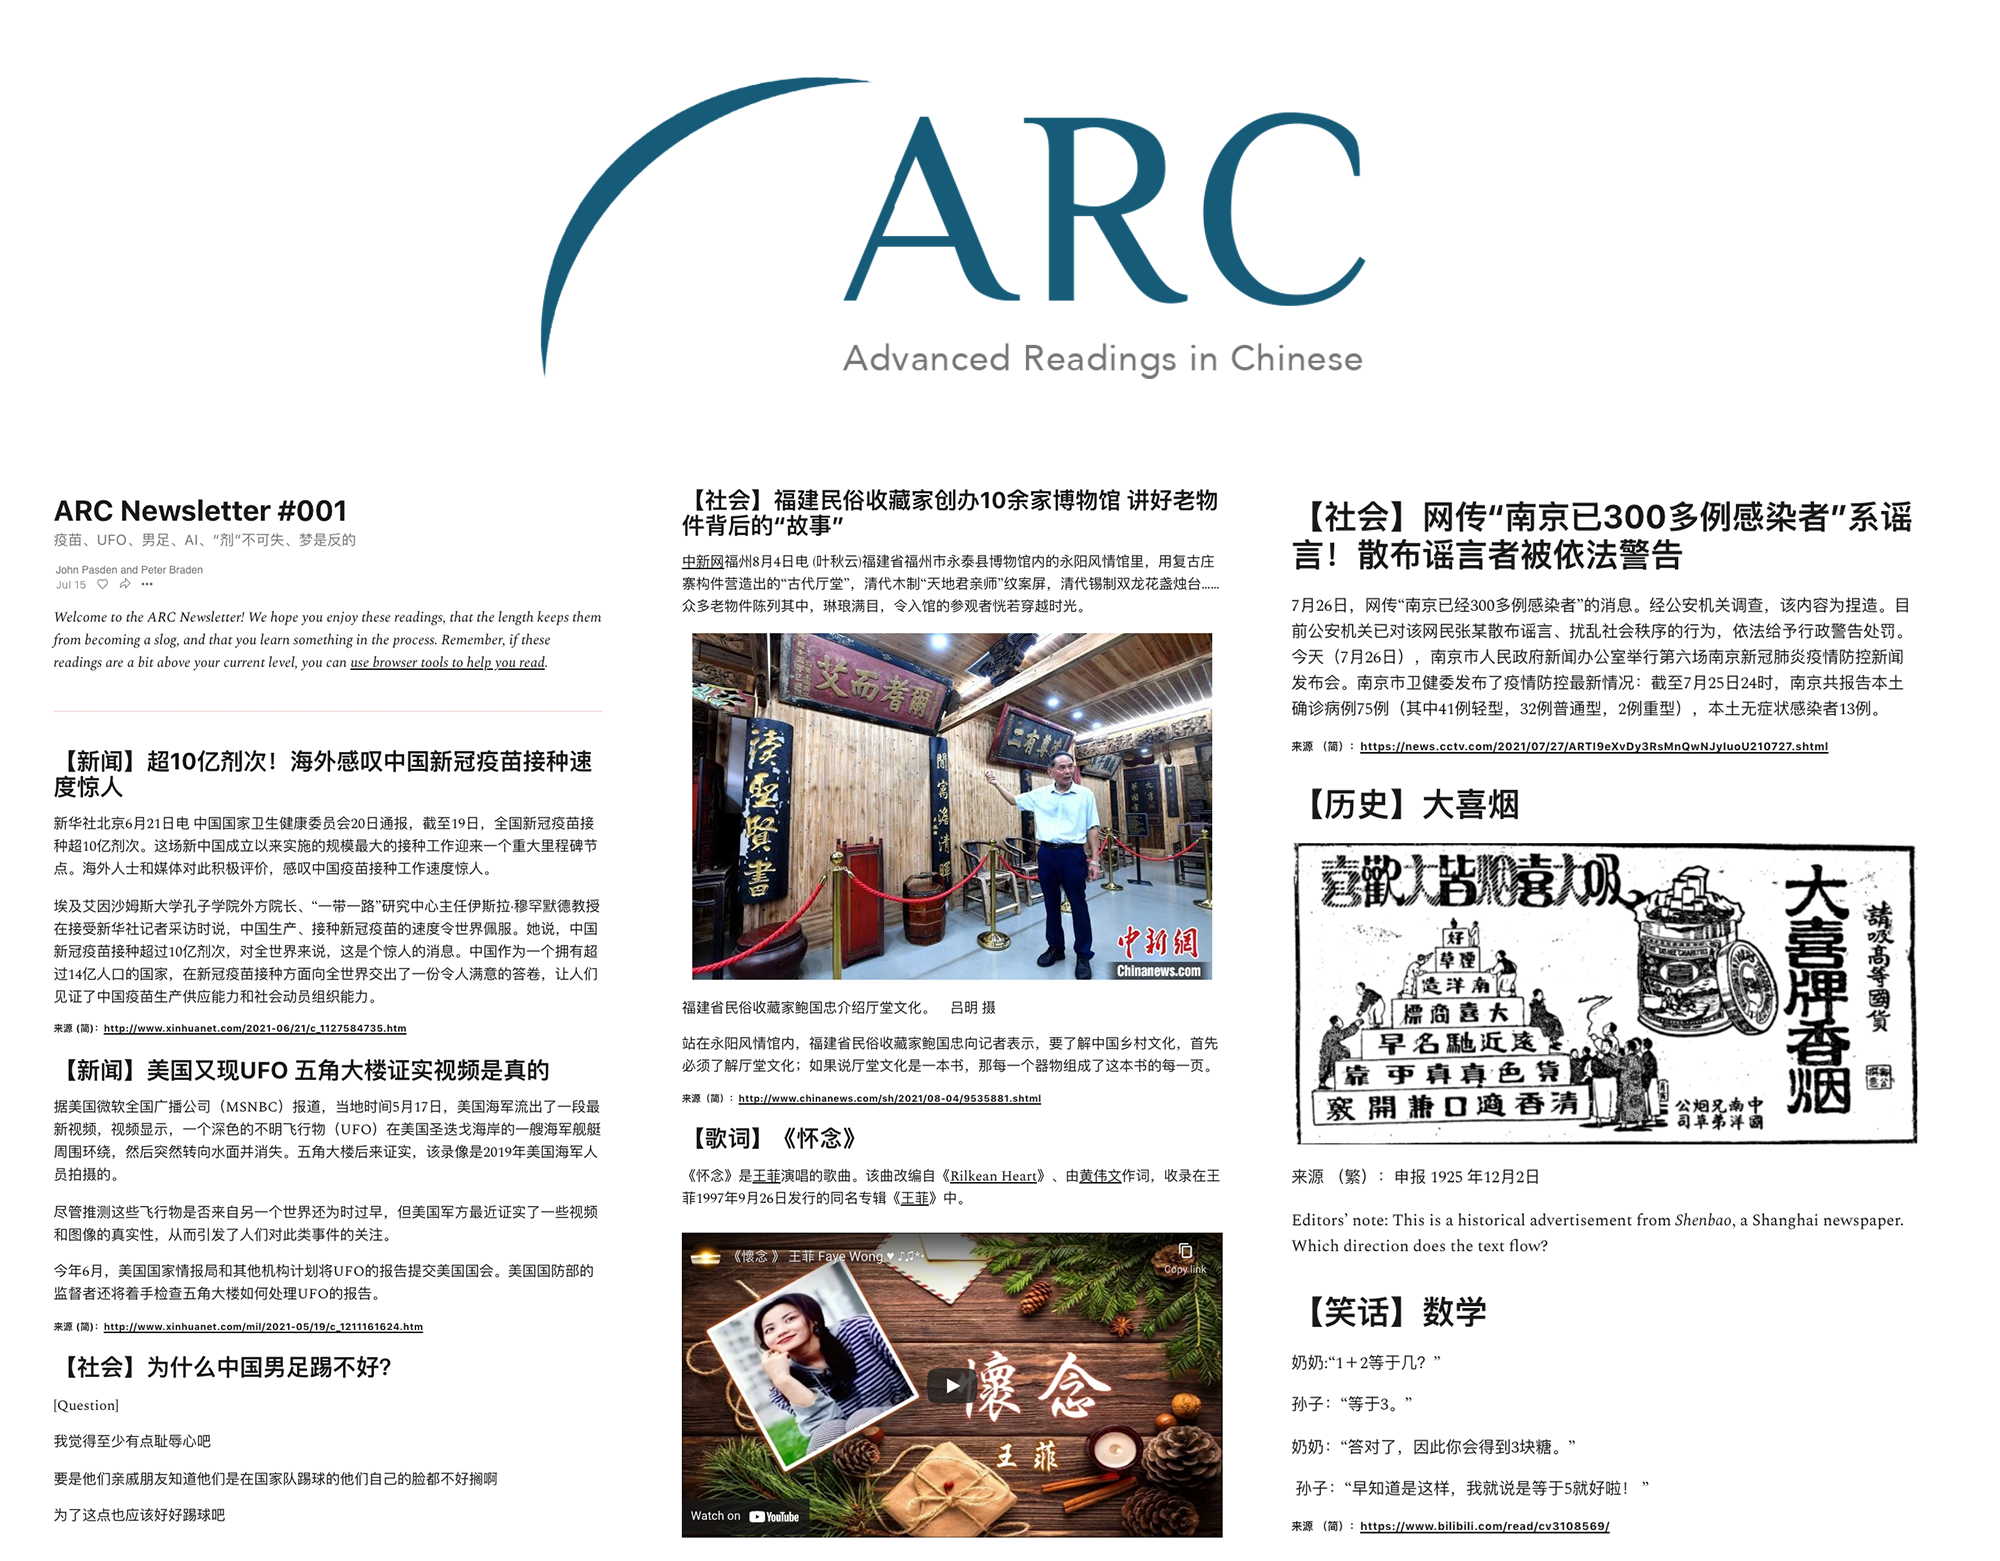 Just Launched ARC (Advanced Readings in Chinese)